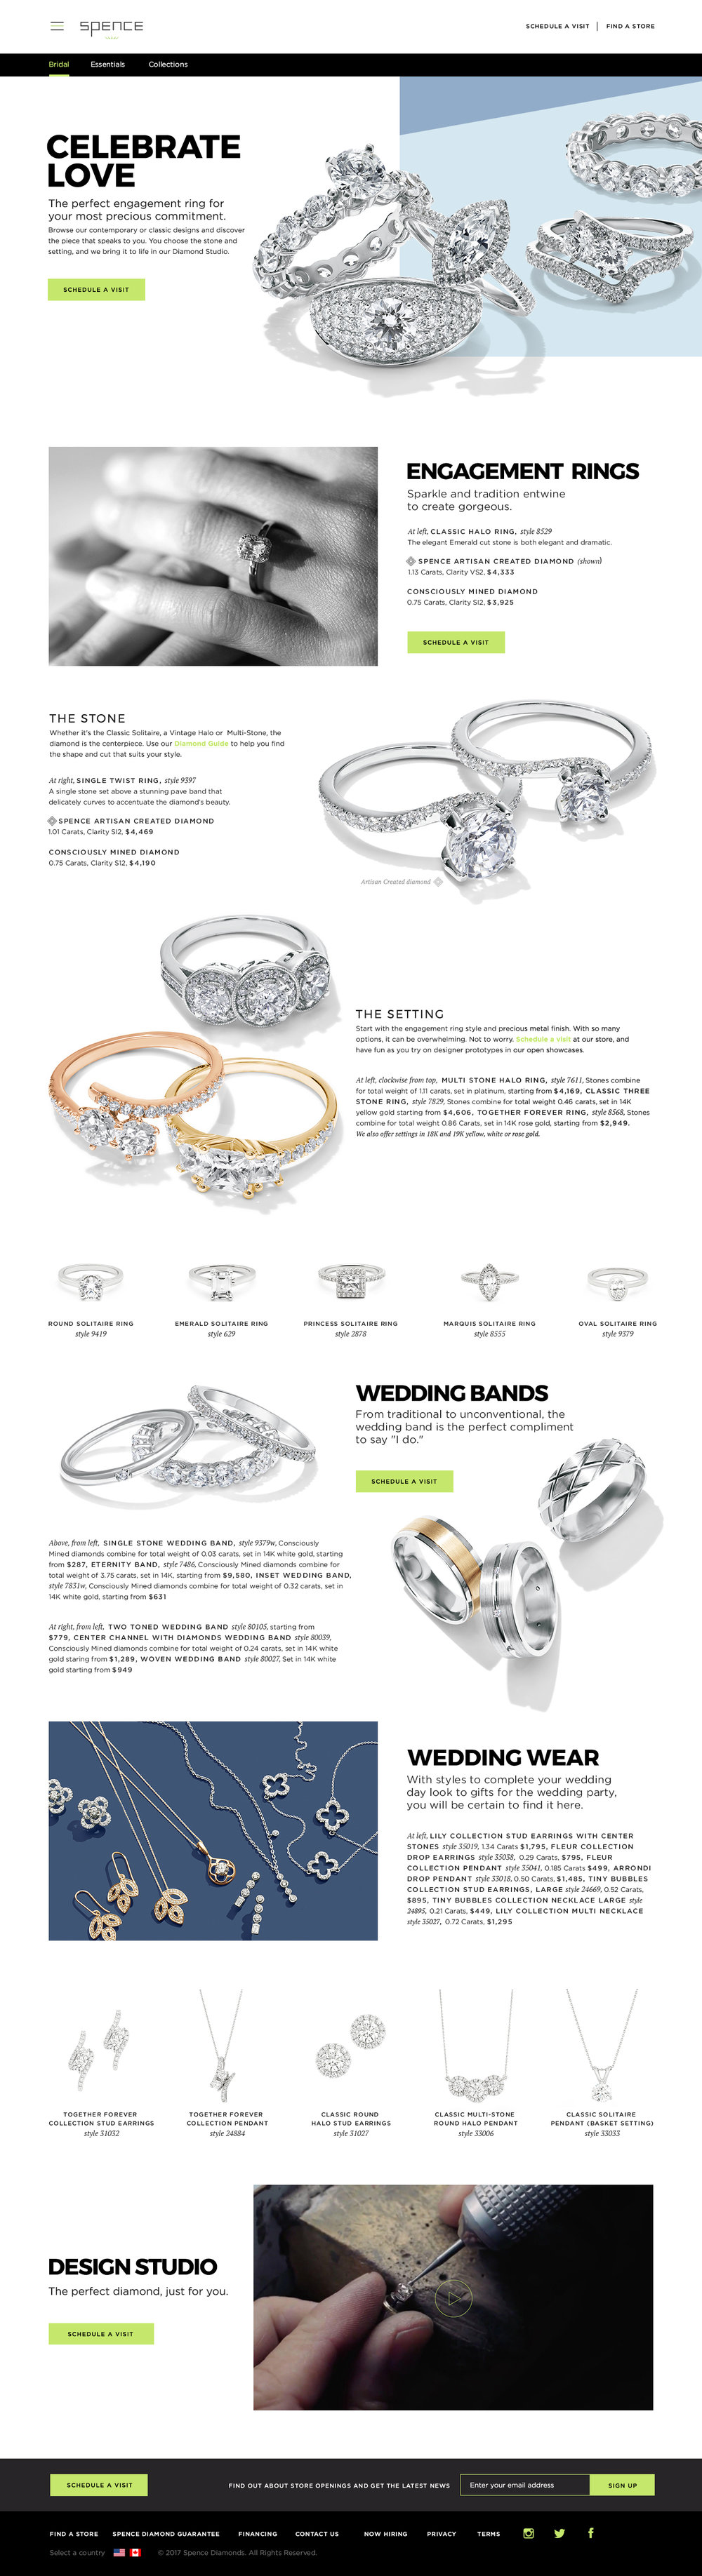 Spence Bridal Page.jpg